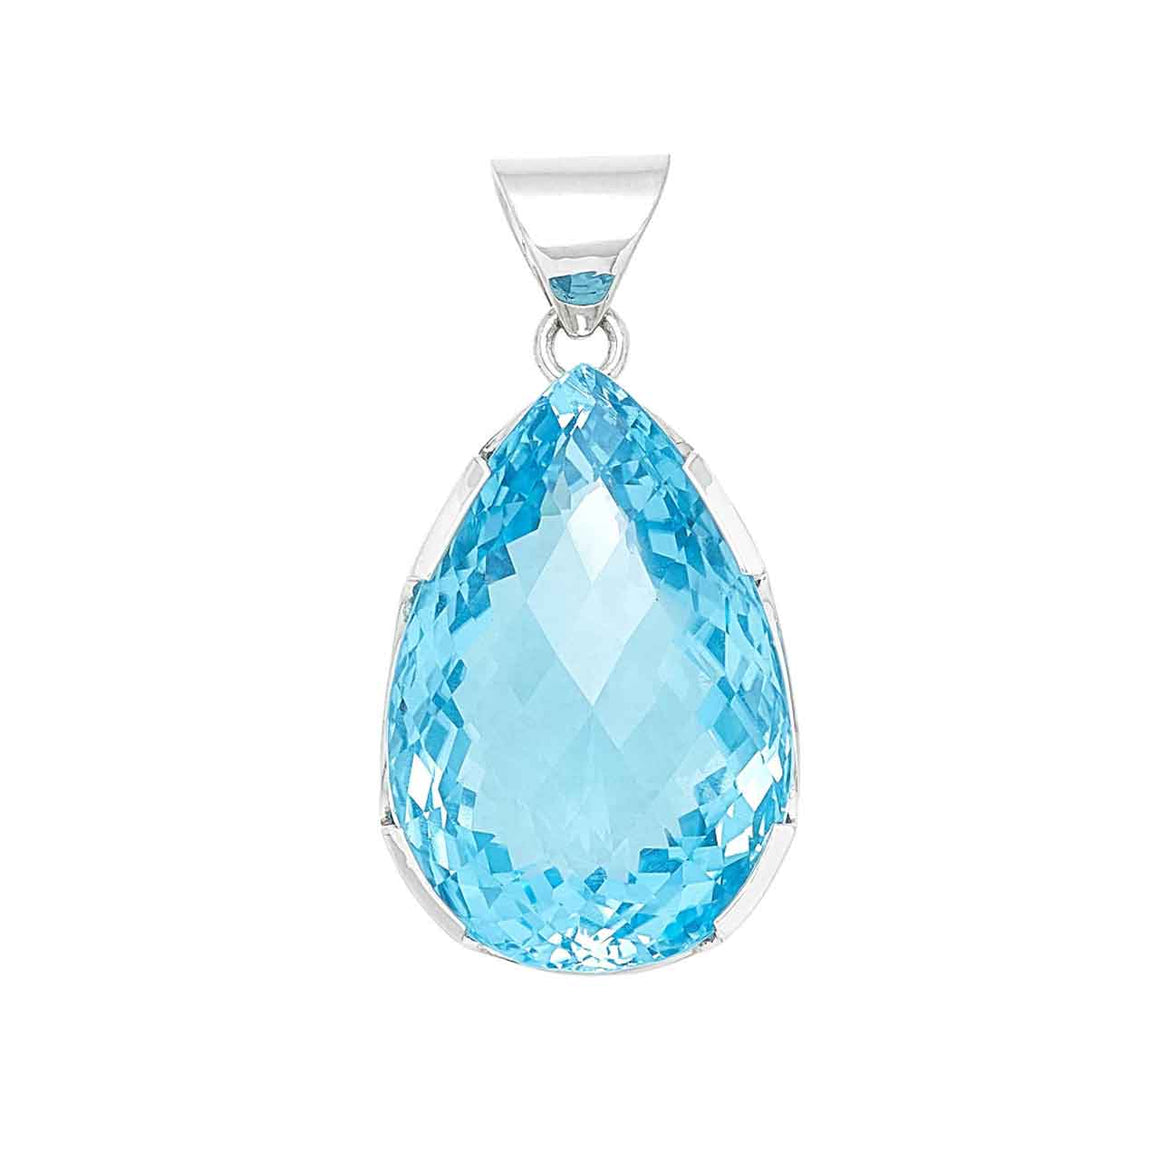 Limited Edition Swiss Blue Topaz Pendant